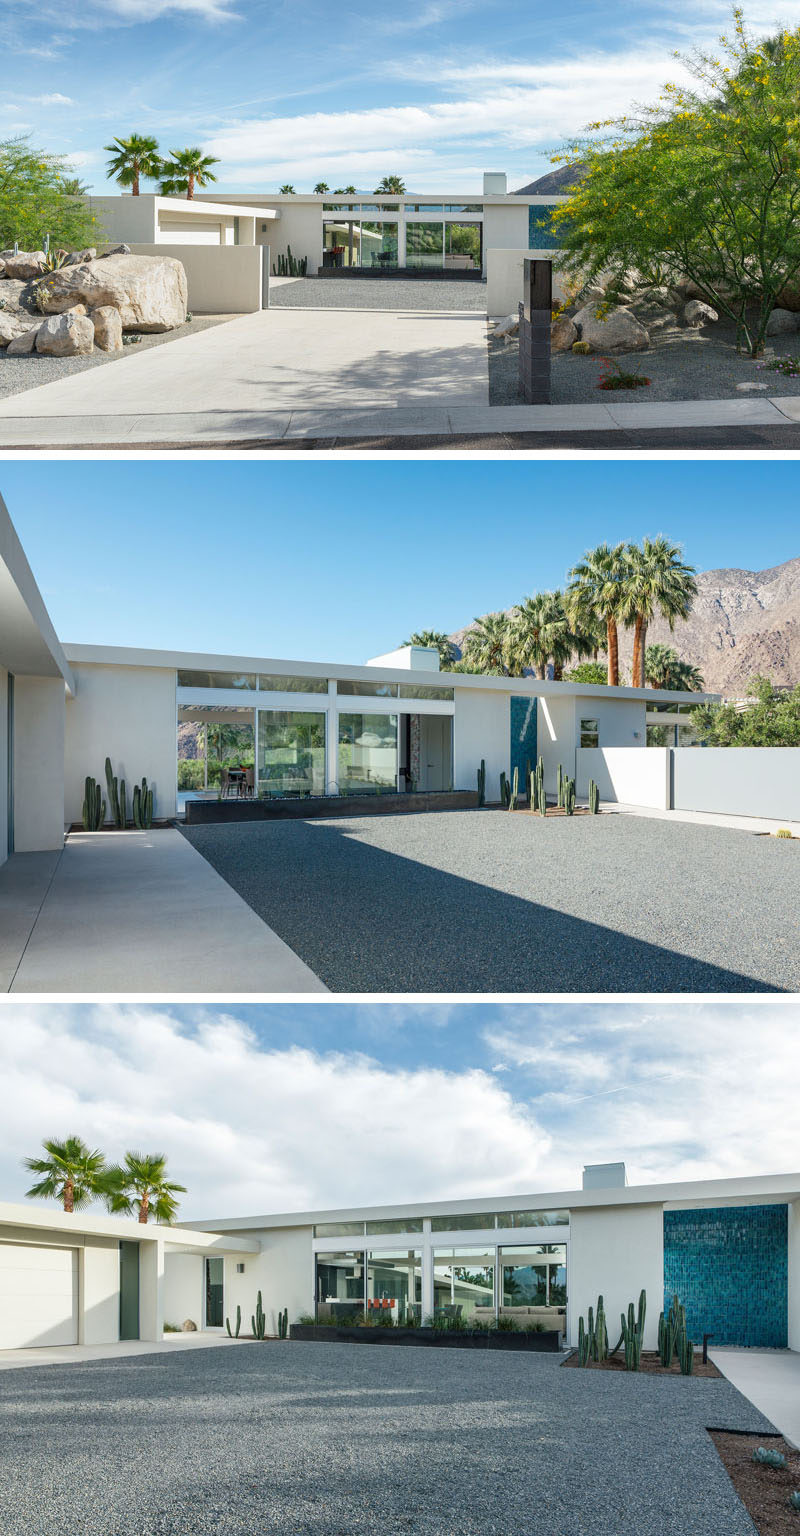 O2 Architecture have designed Las Palmas Heights Residence after being asked by their clients to design a home that would have an open plan living area and be built with durable materials.